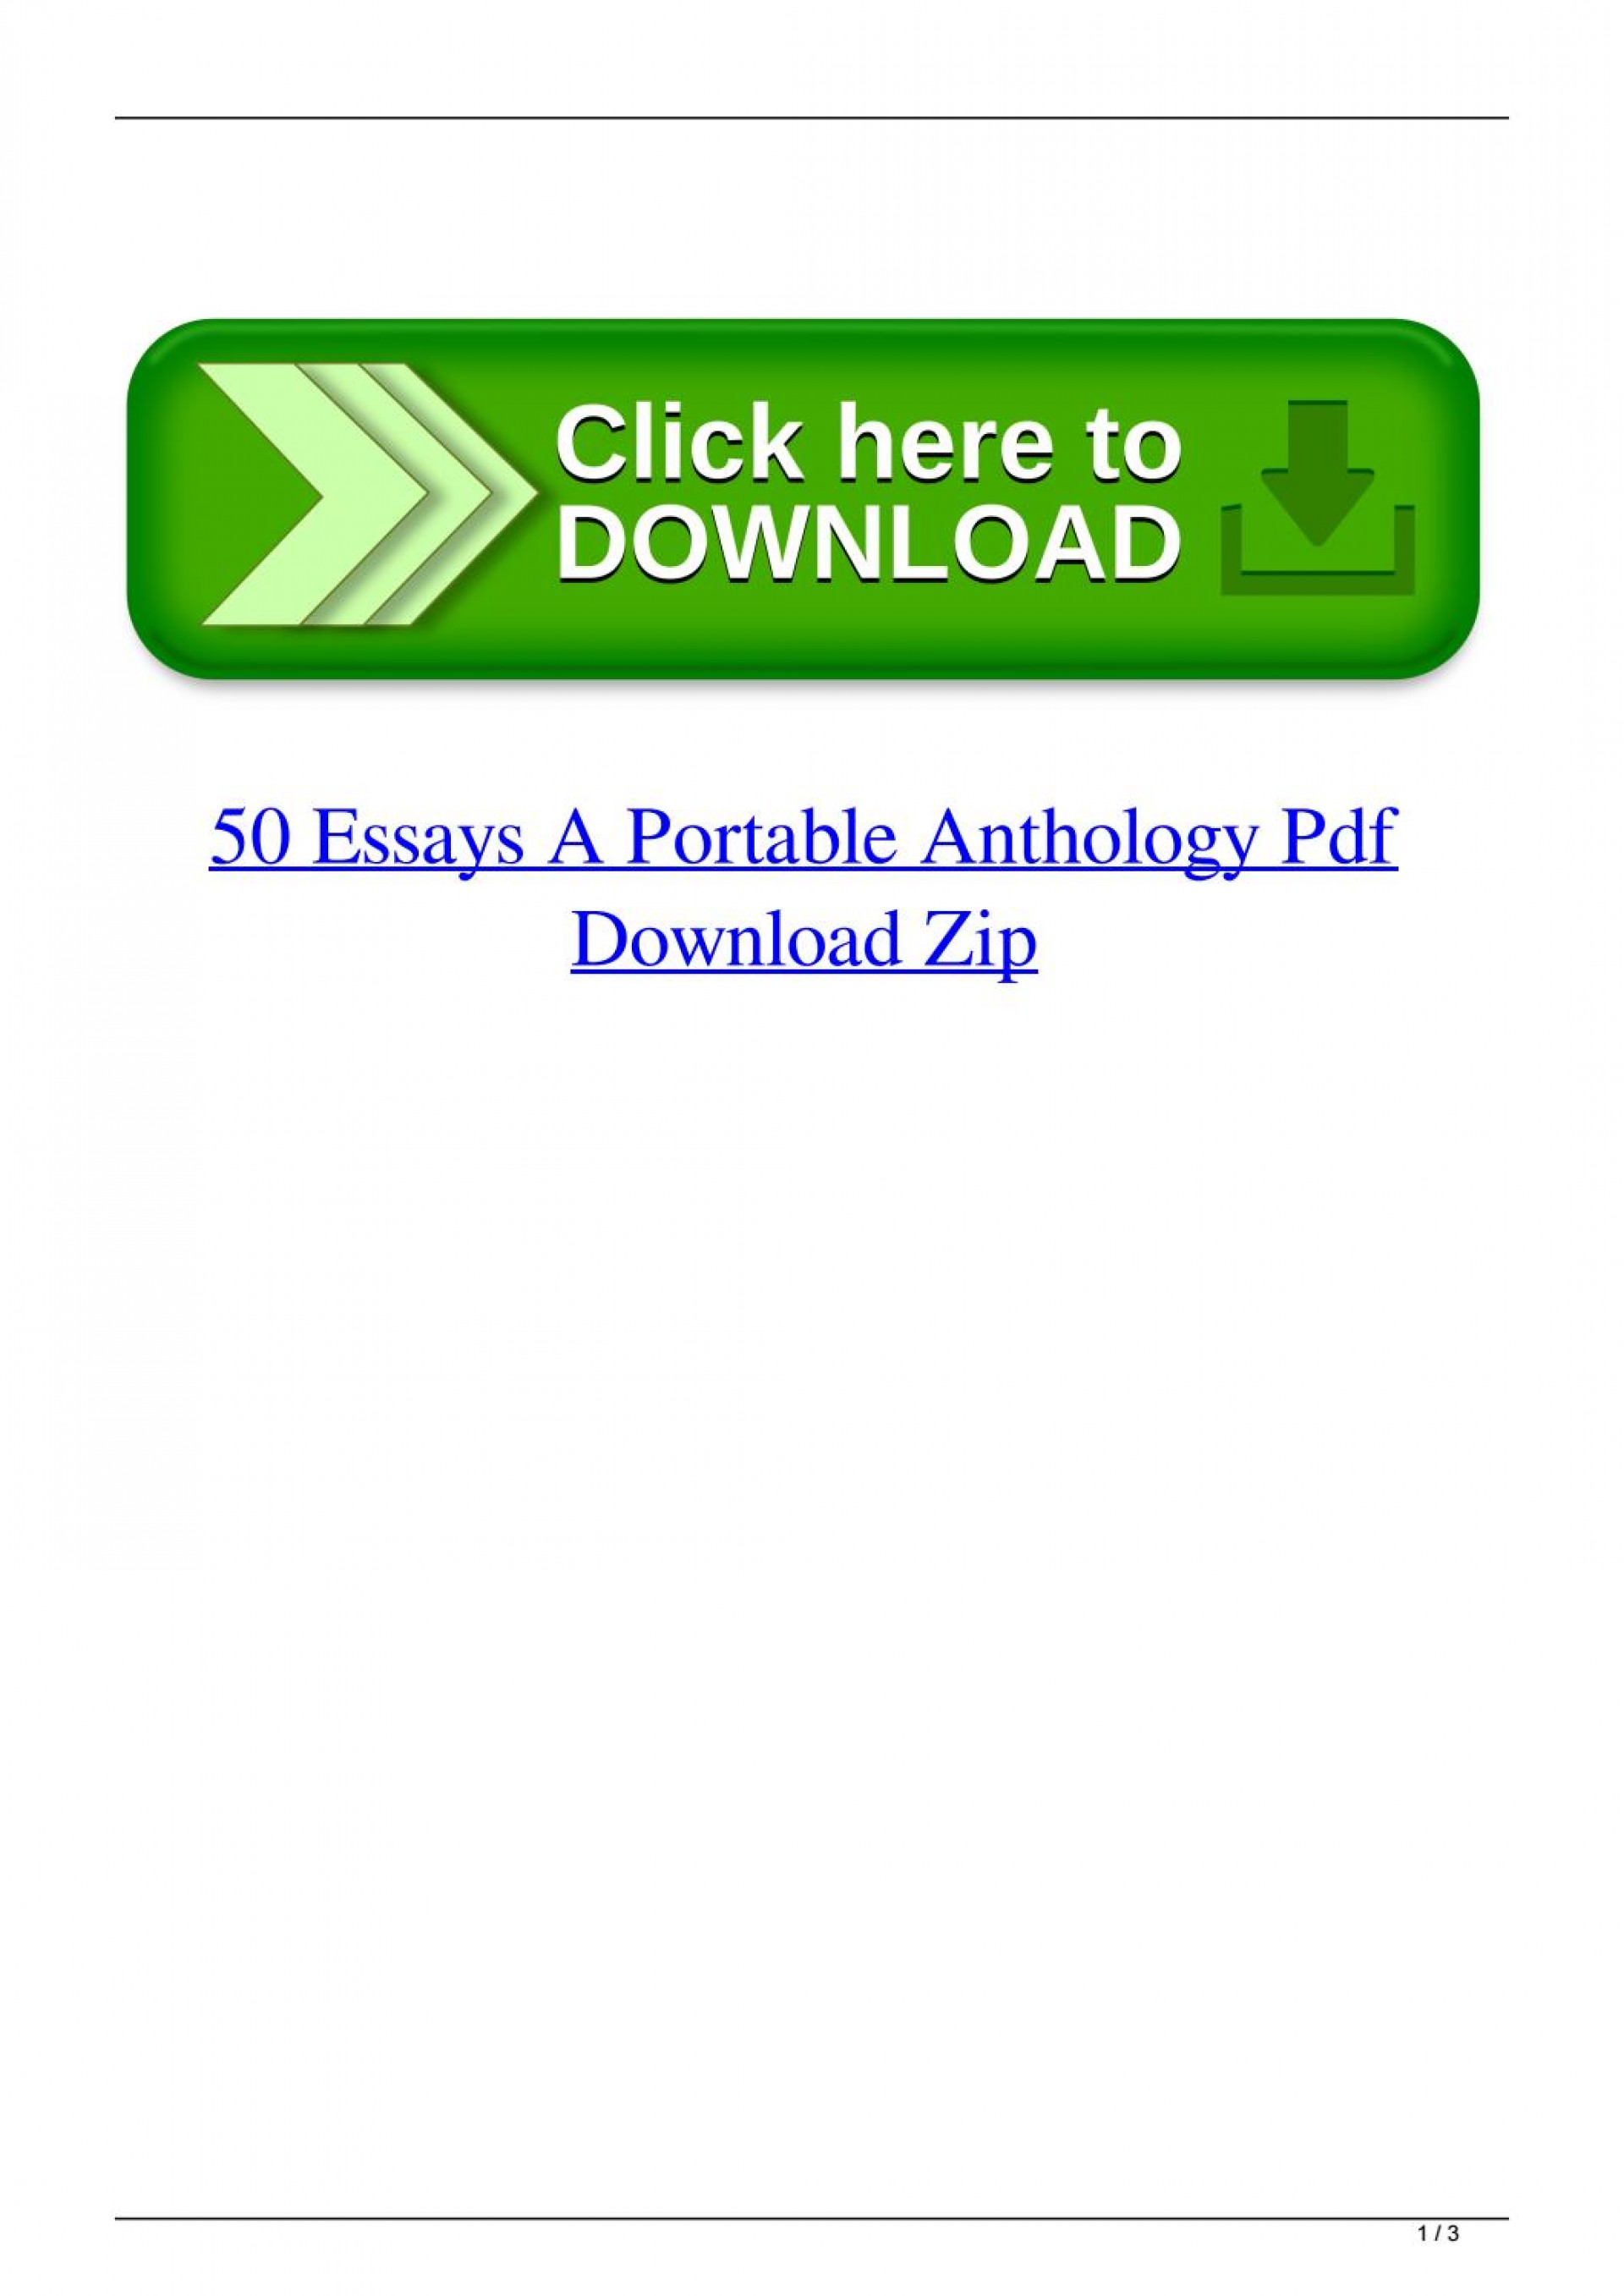 016 Essay Example Page 1 Essays Portable Anthology 4th Edition Awful 50 A Pdf Free 1920